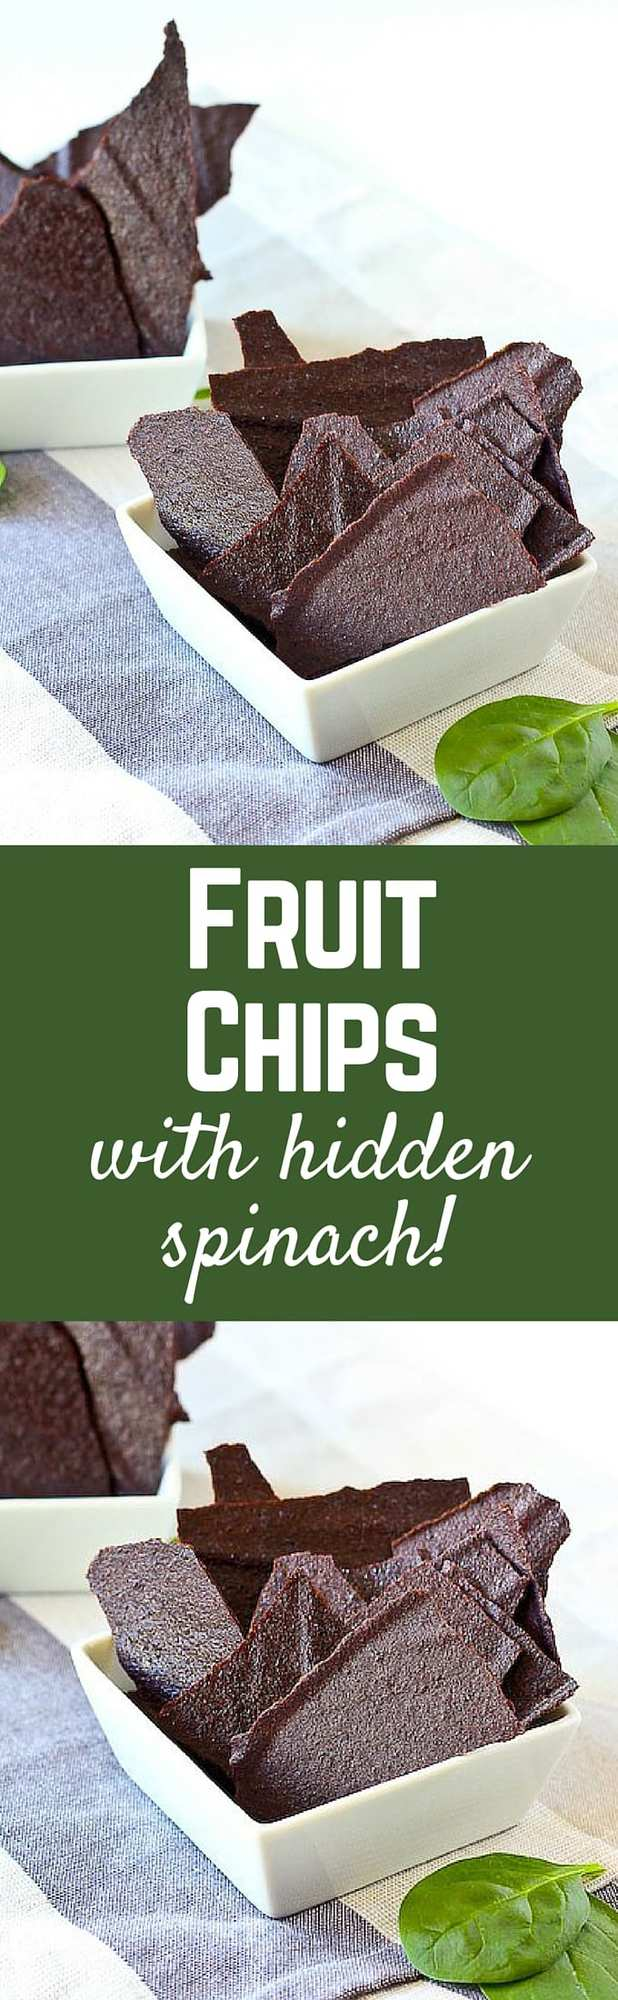 These fun homemade fruit chips are a fun, healthy snack (kids love them!). Major bonus: They hide a ton of spinach! Get the recipe on RachelCooks.com!